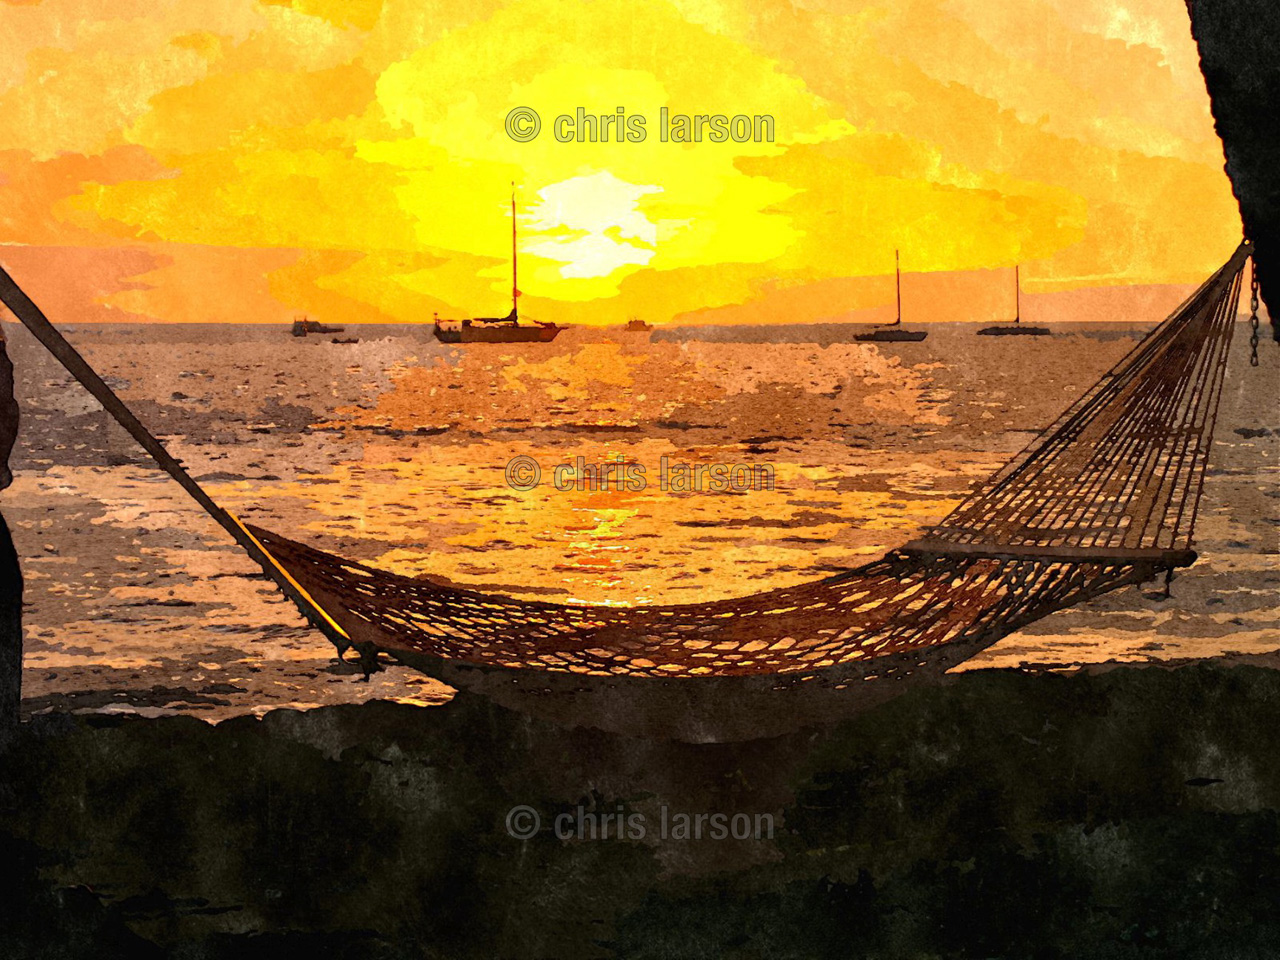 Hammock Hideaway by Chris Larson - Hammock and sunset